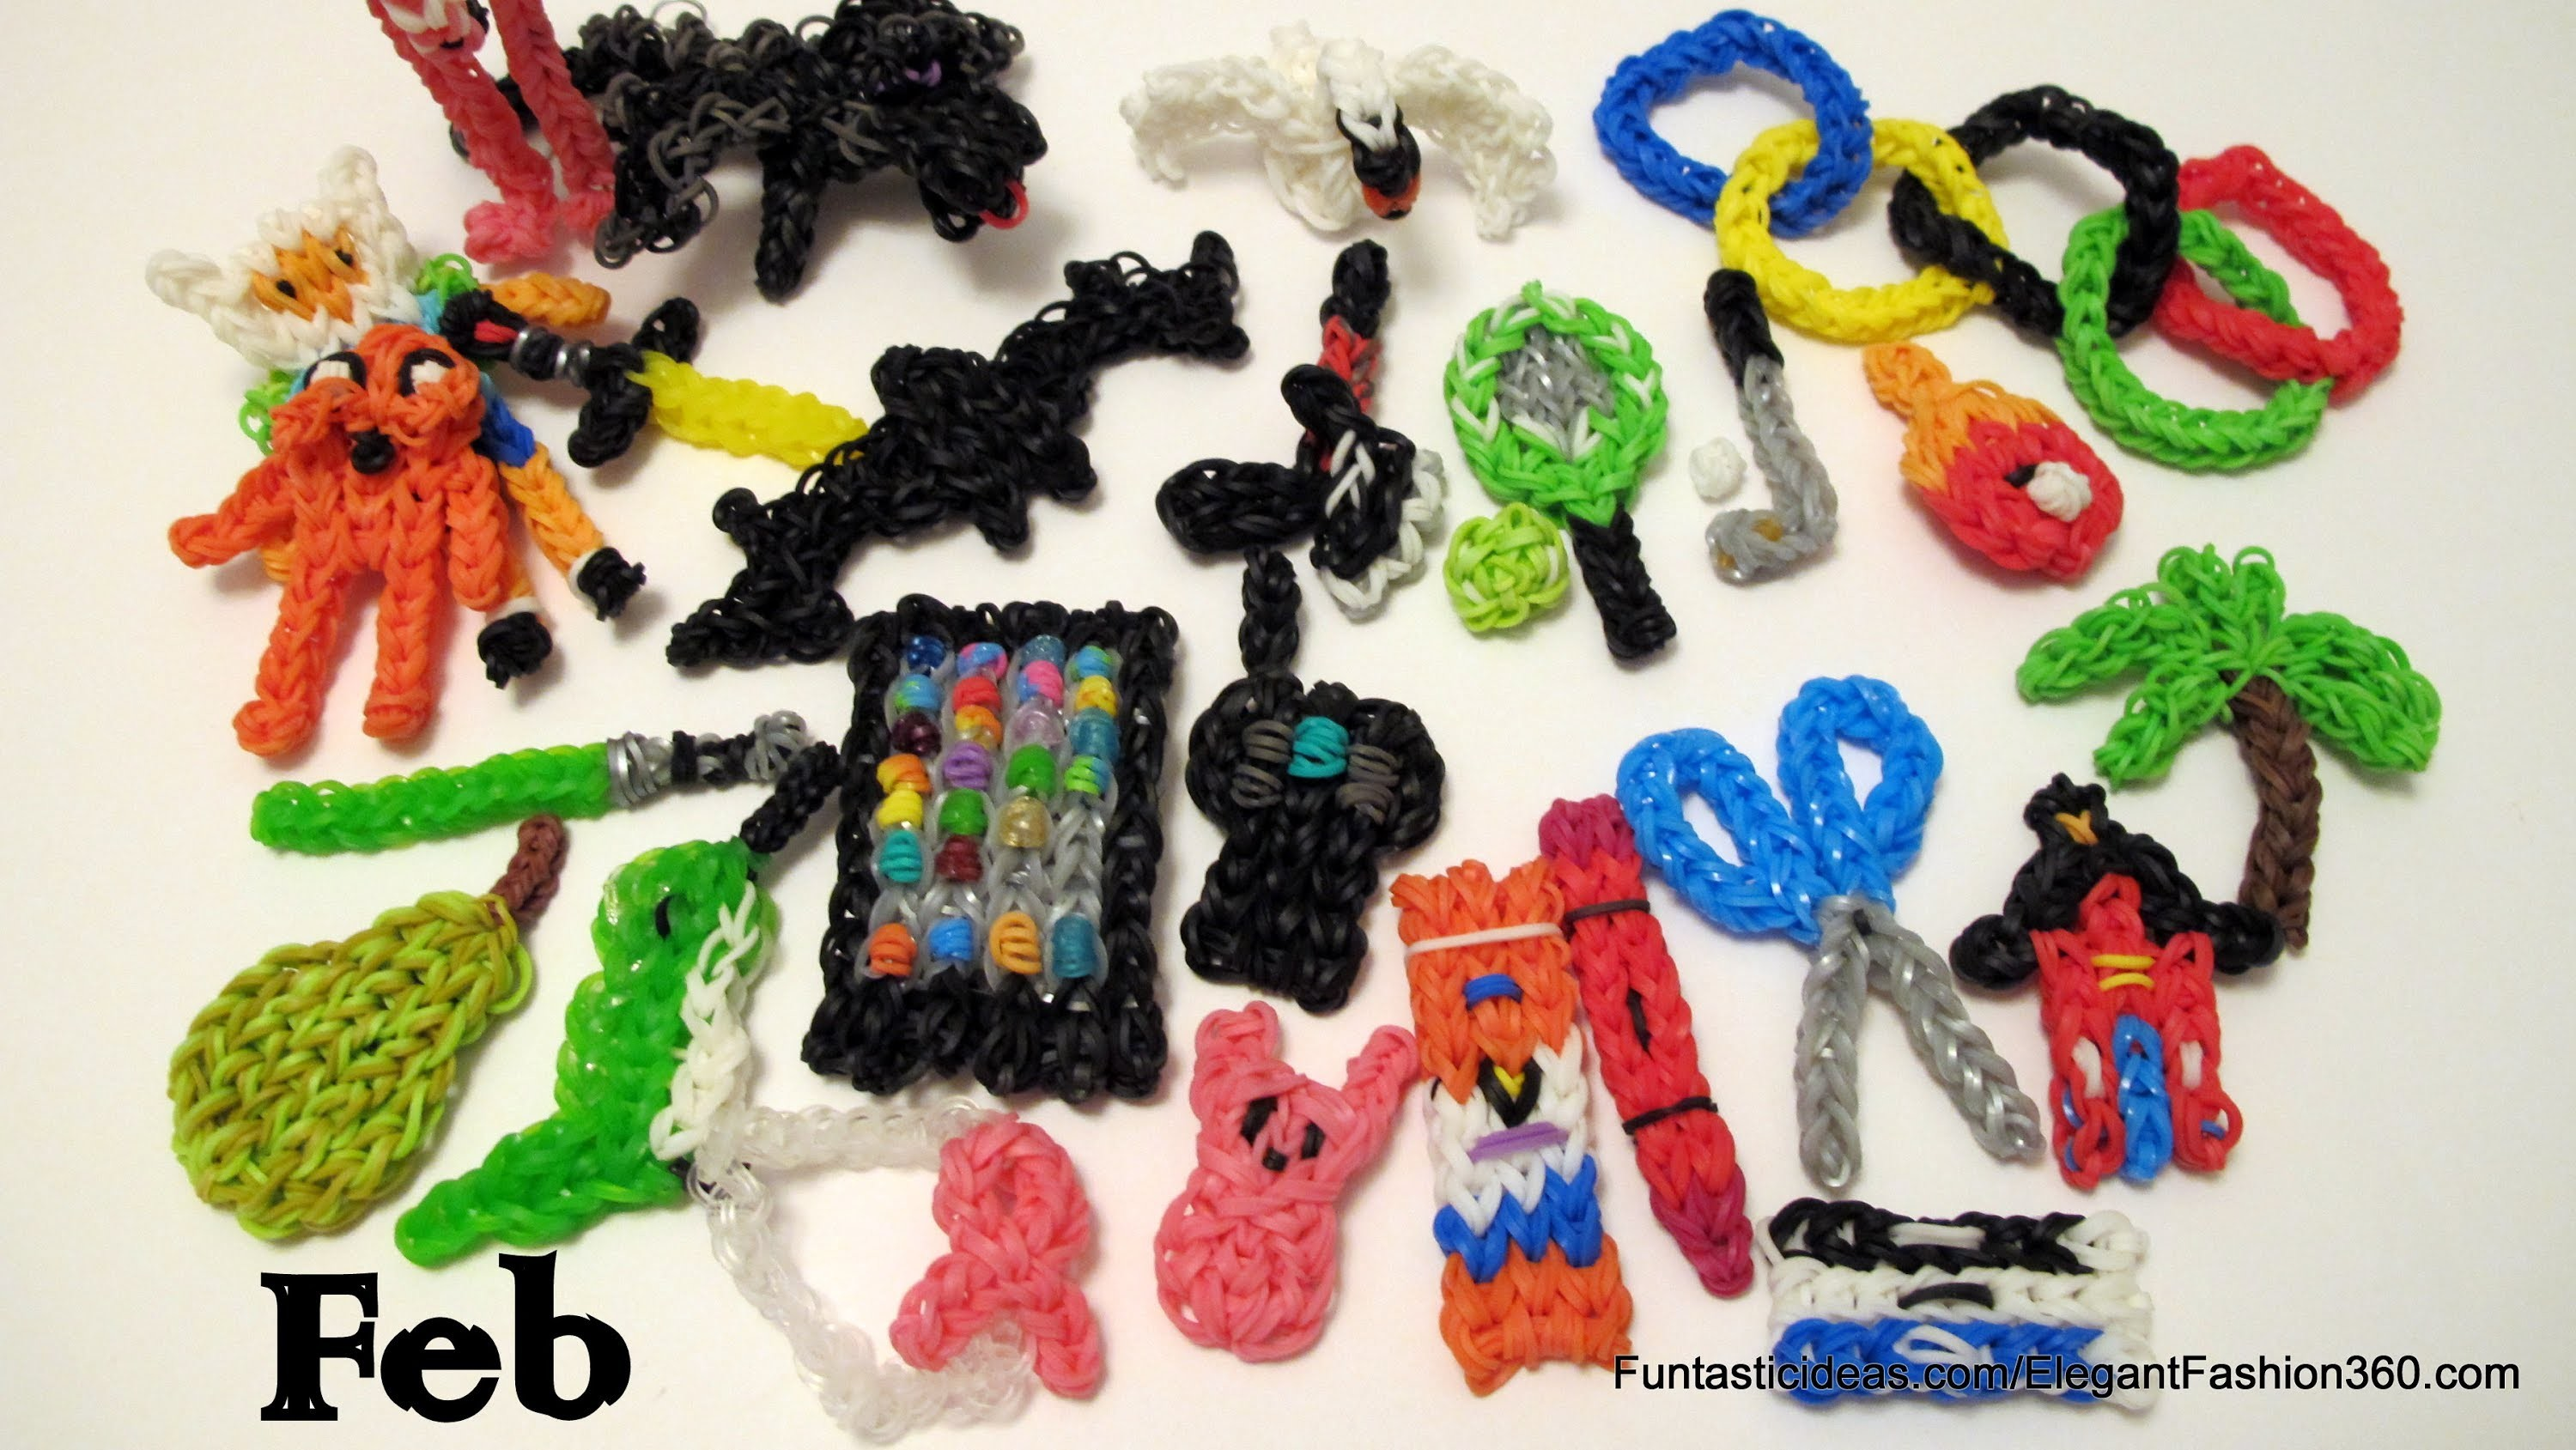 Rainbow Loom Collections by Elegant Fashion 360 - 02-2014